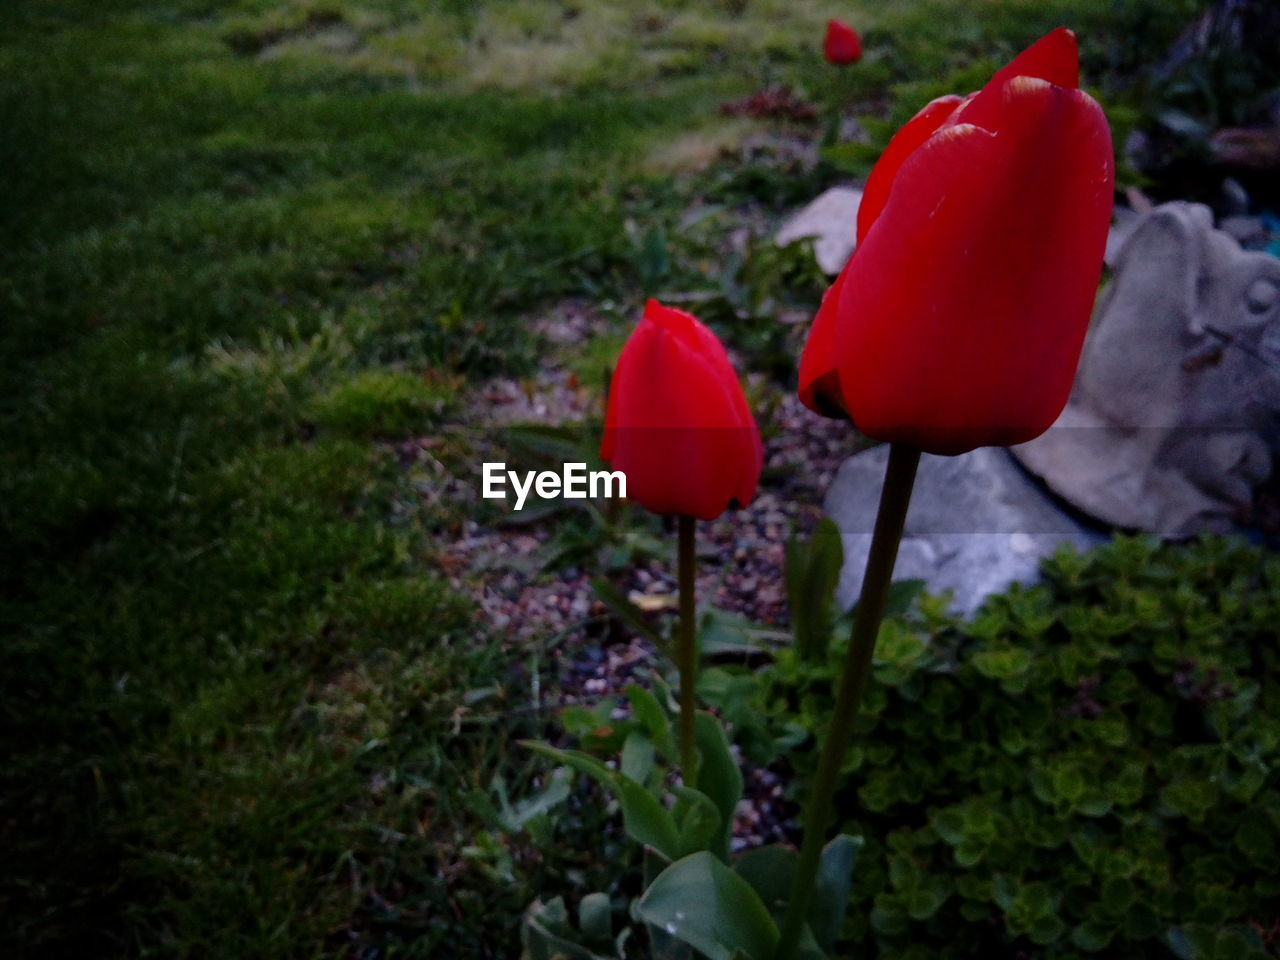 flower, nature, growth, red, beauty in nature, fragility, plant, freshness, petal, no people, outdoors, tulip, poppy, close-up, flower head, blooming, day